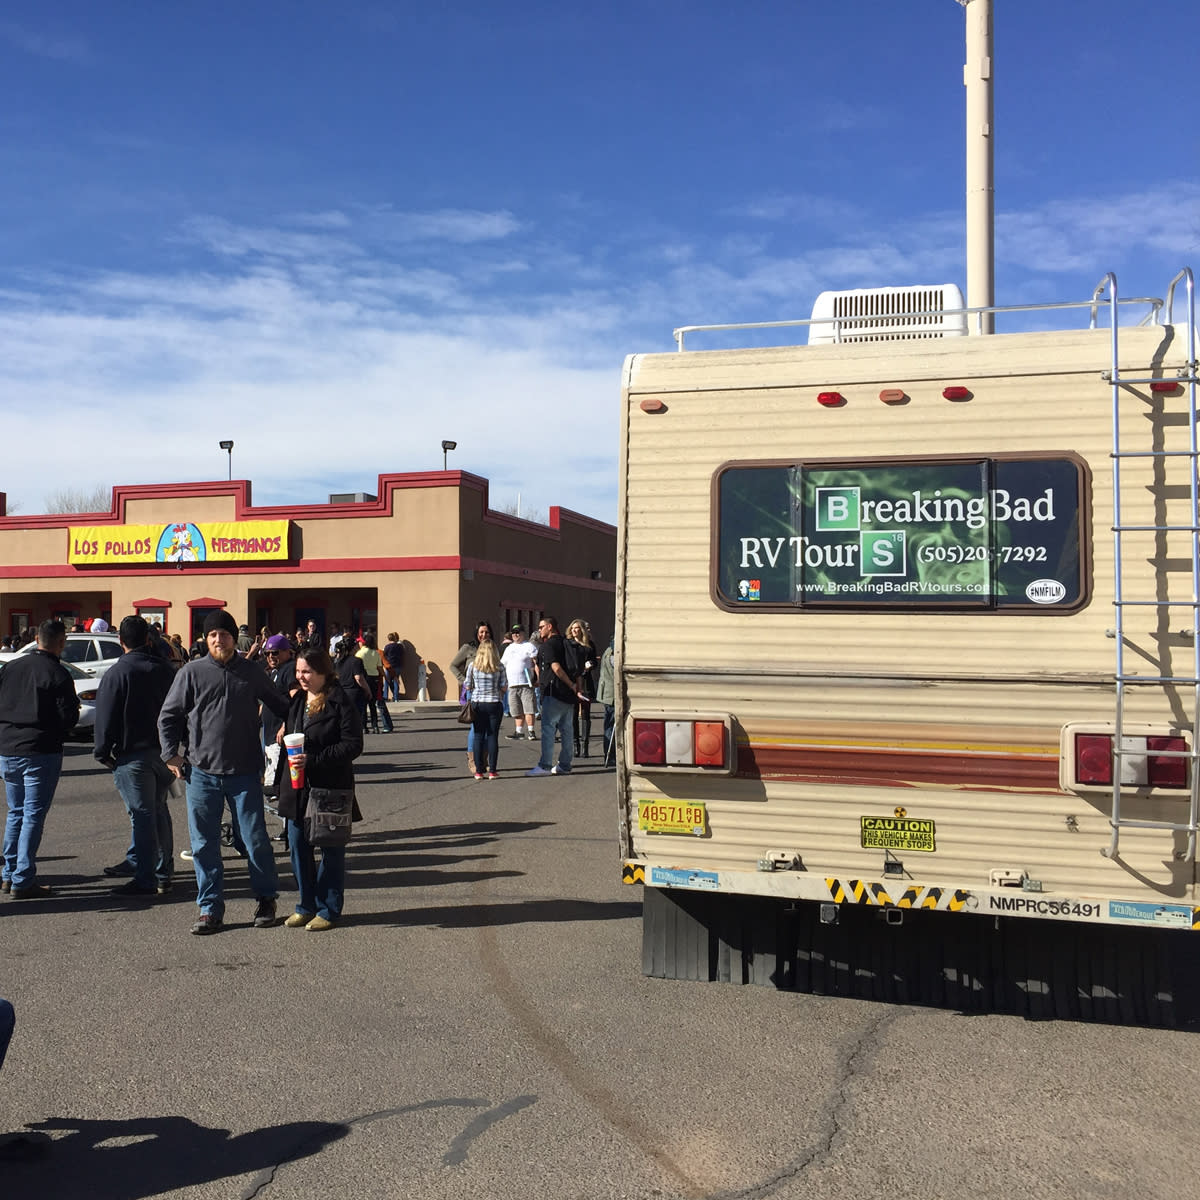 The RV that gives Breaking Bad Tours in Albuquerque, NM